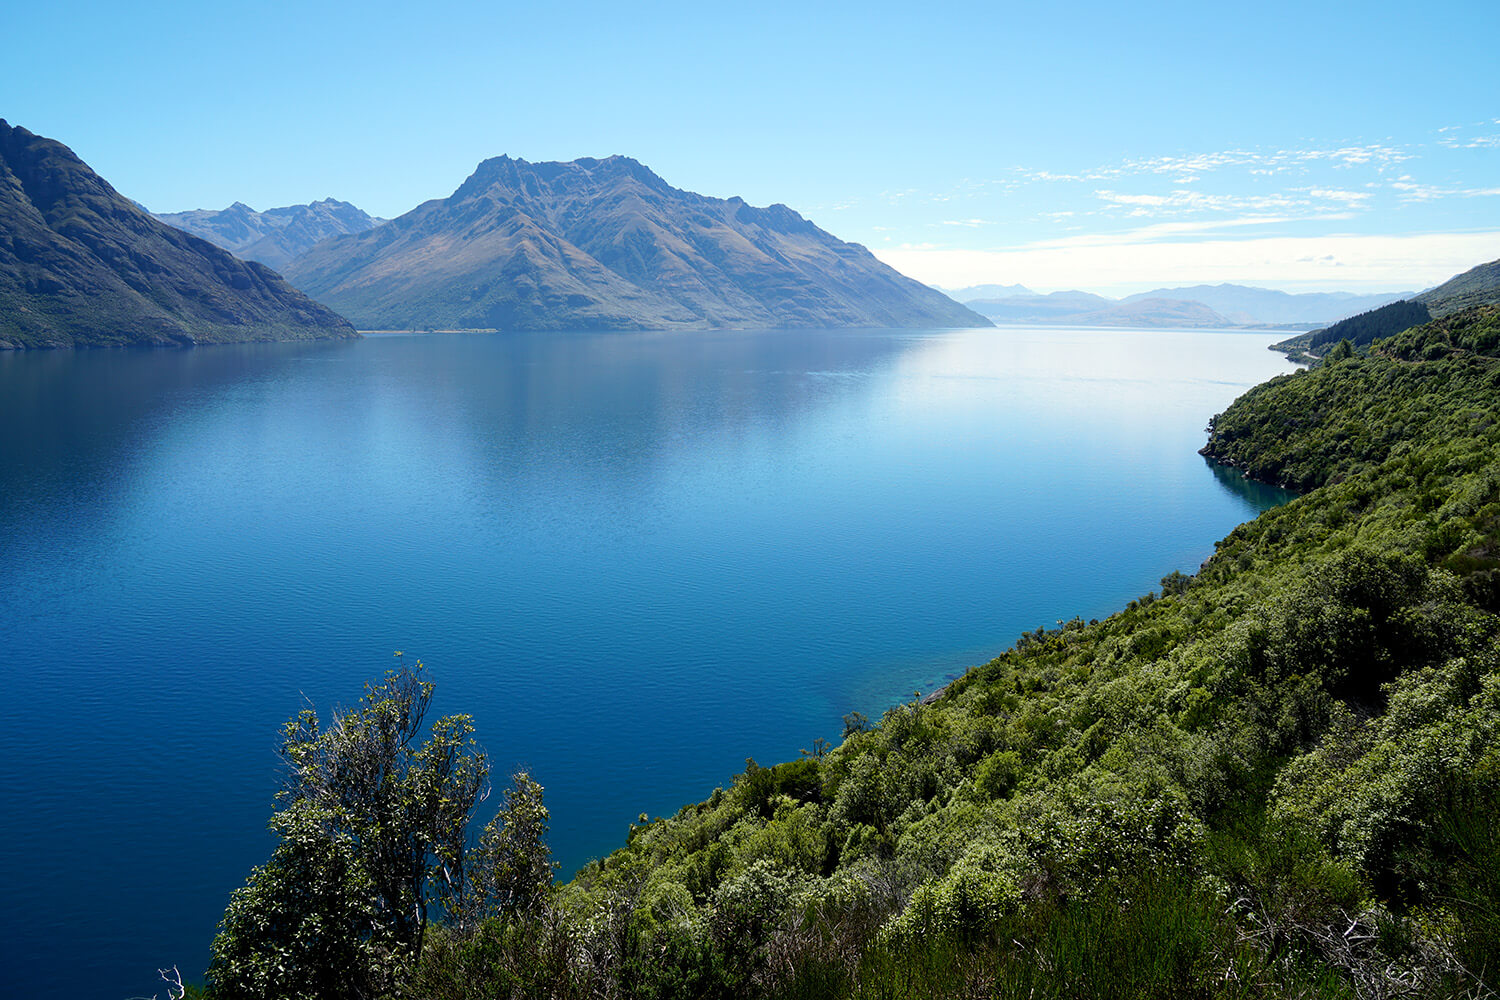 Le lac de queenstown